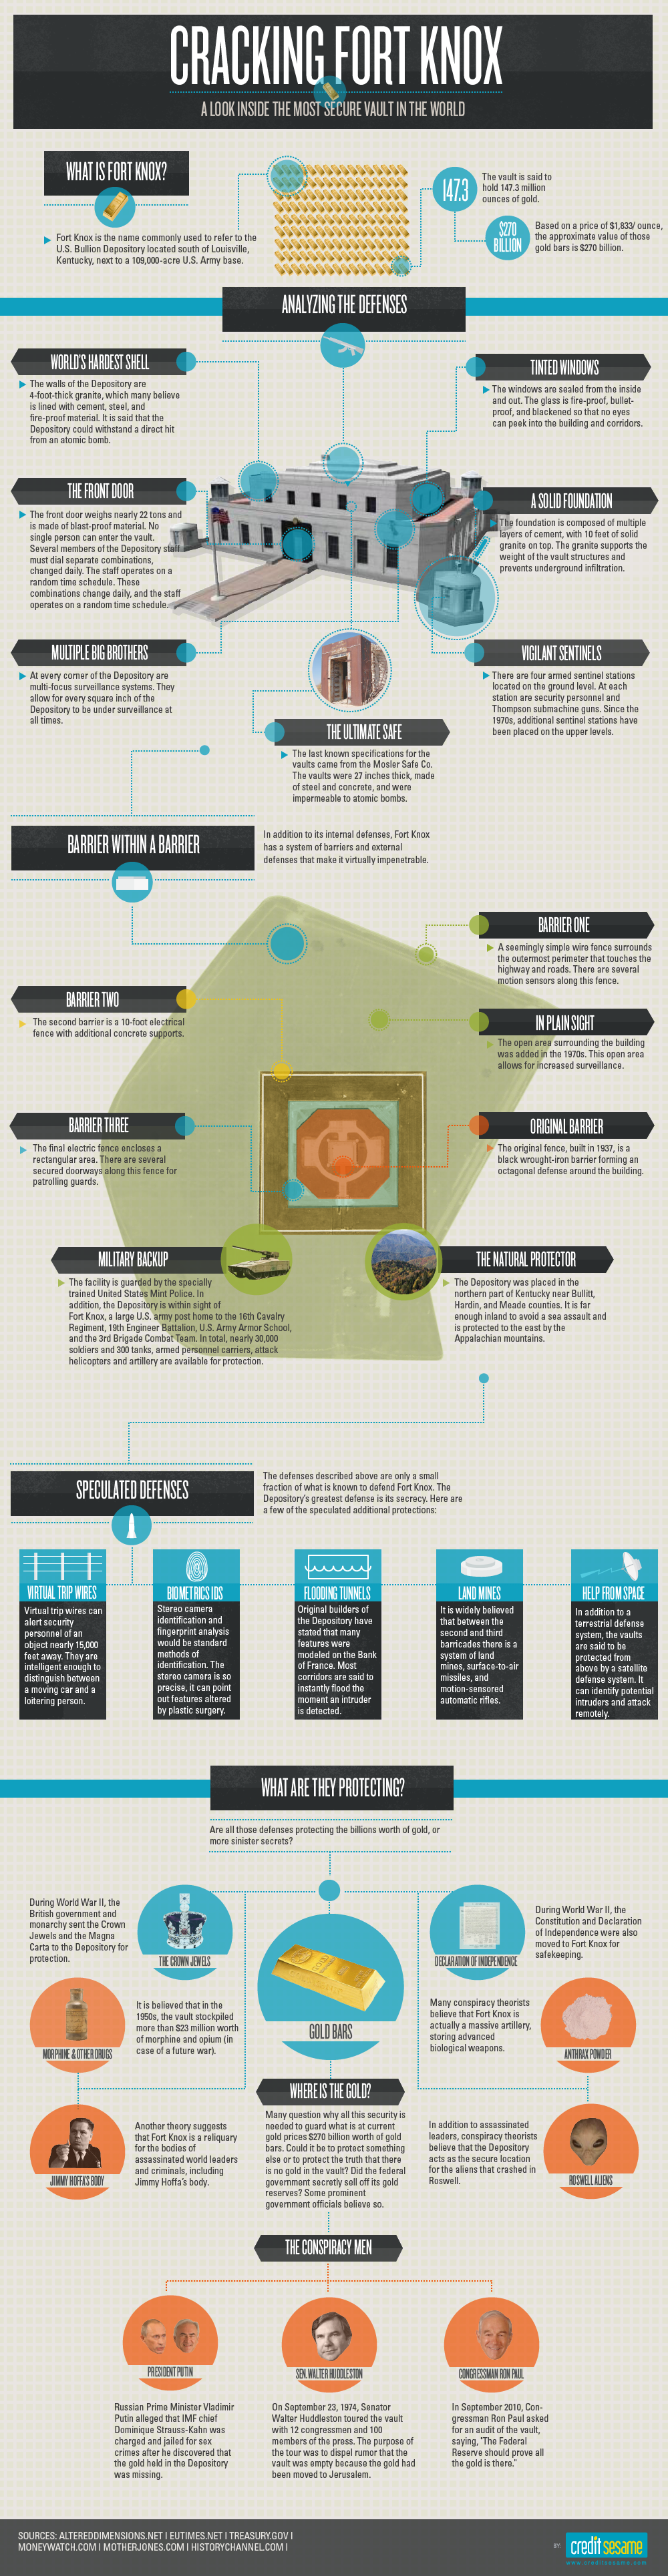 Fort Knox Infographic